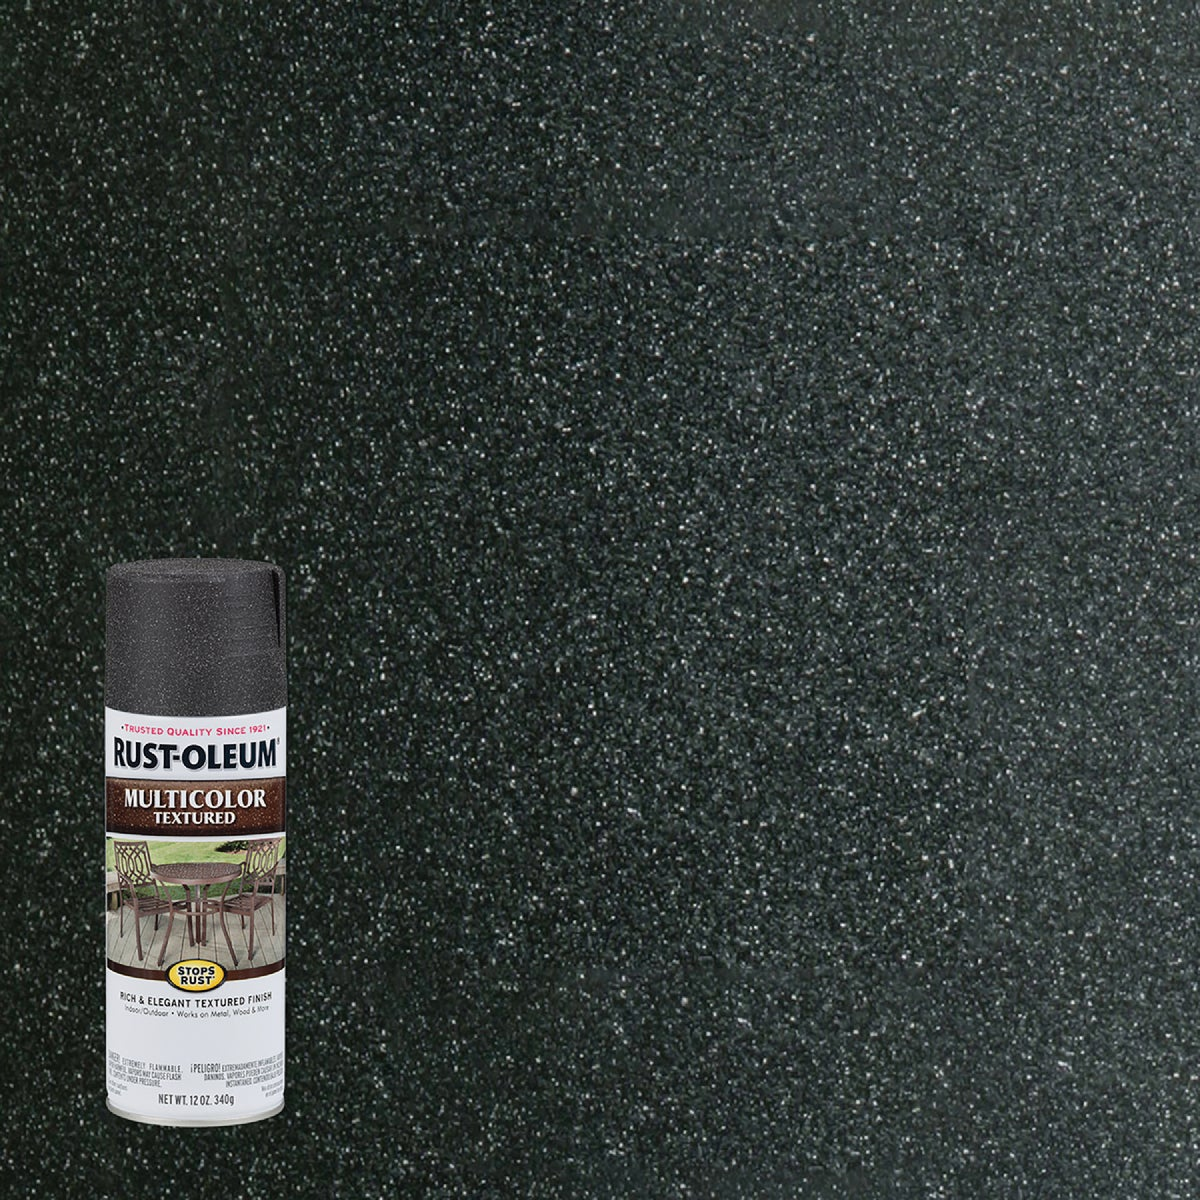 AGED IRON SPRAY PAINT - 223525 by Rustoleum